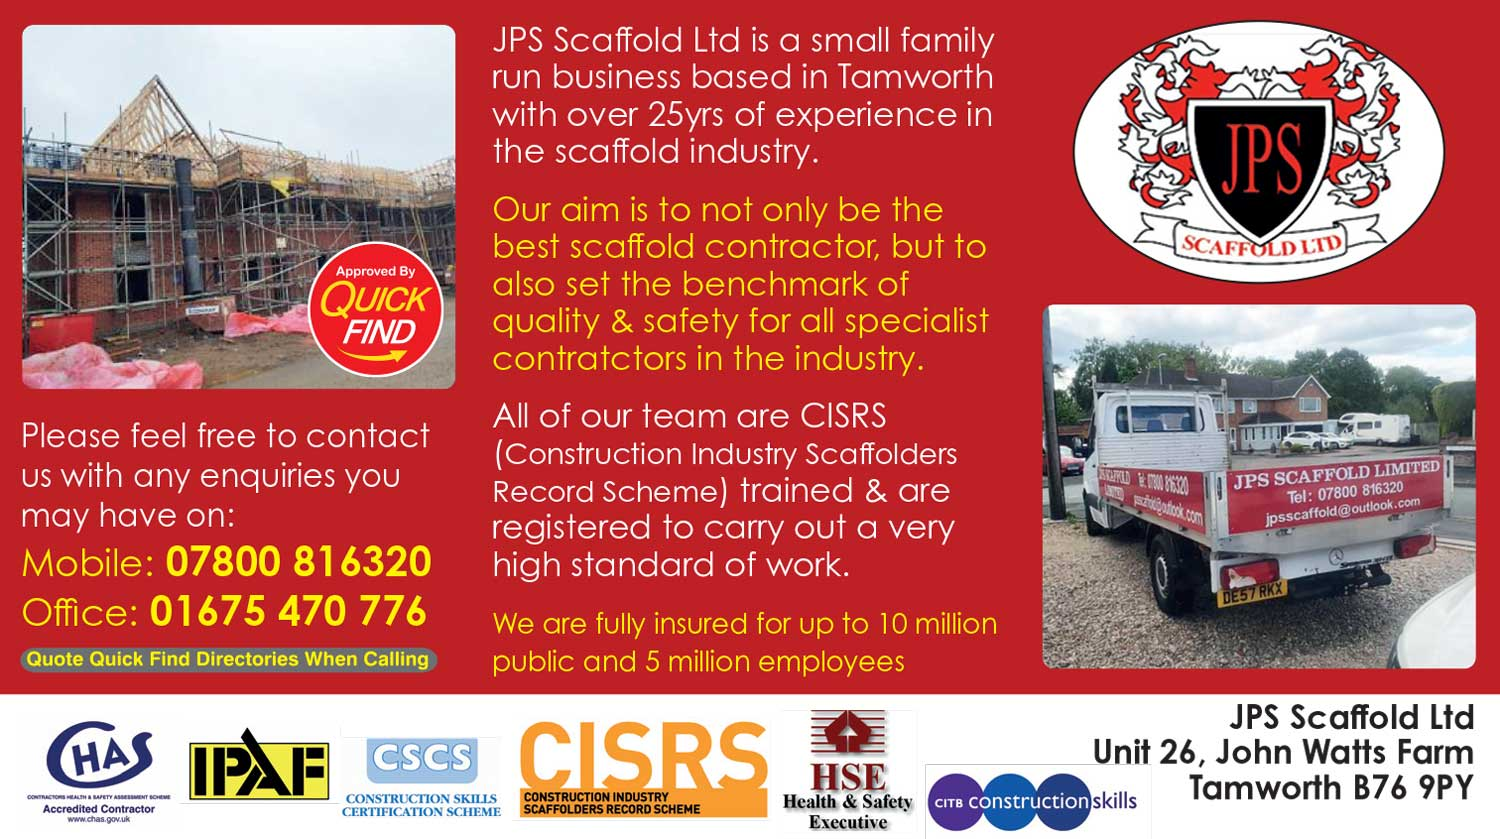 JPS Scaffold Ltd